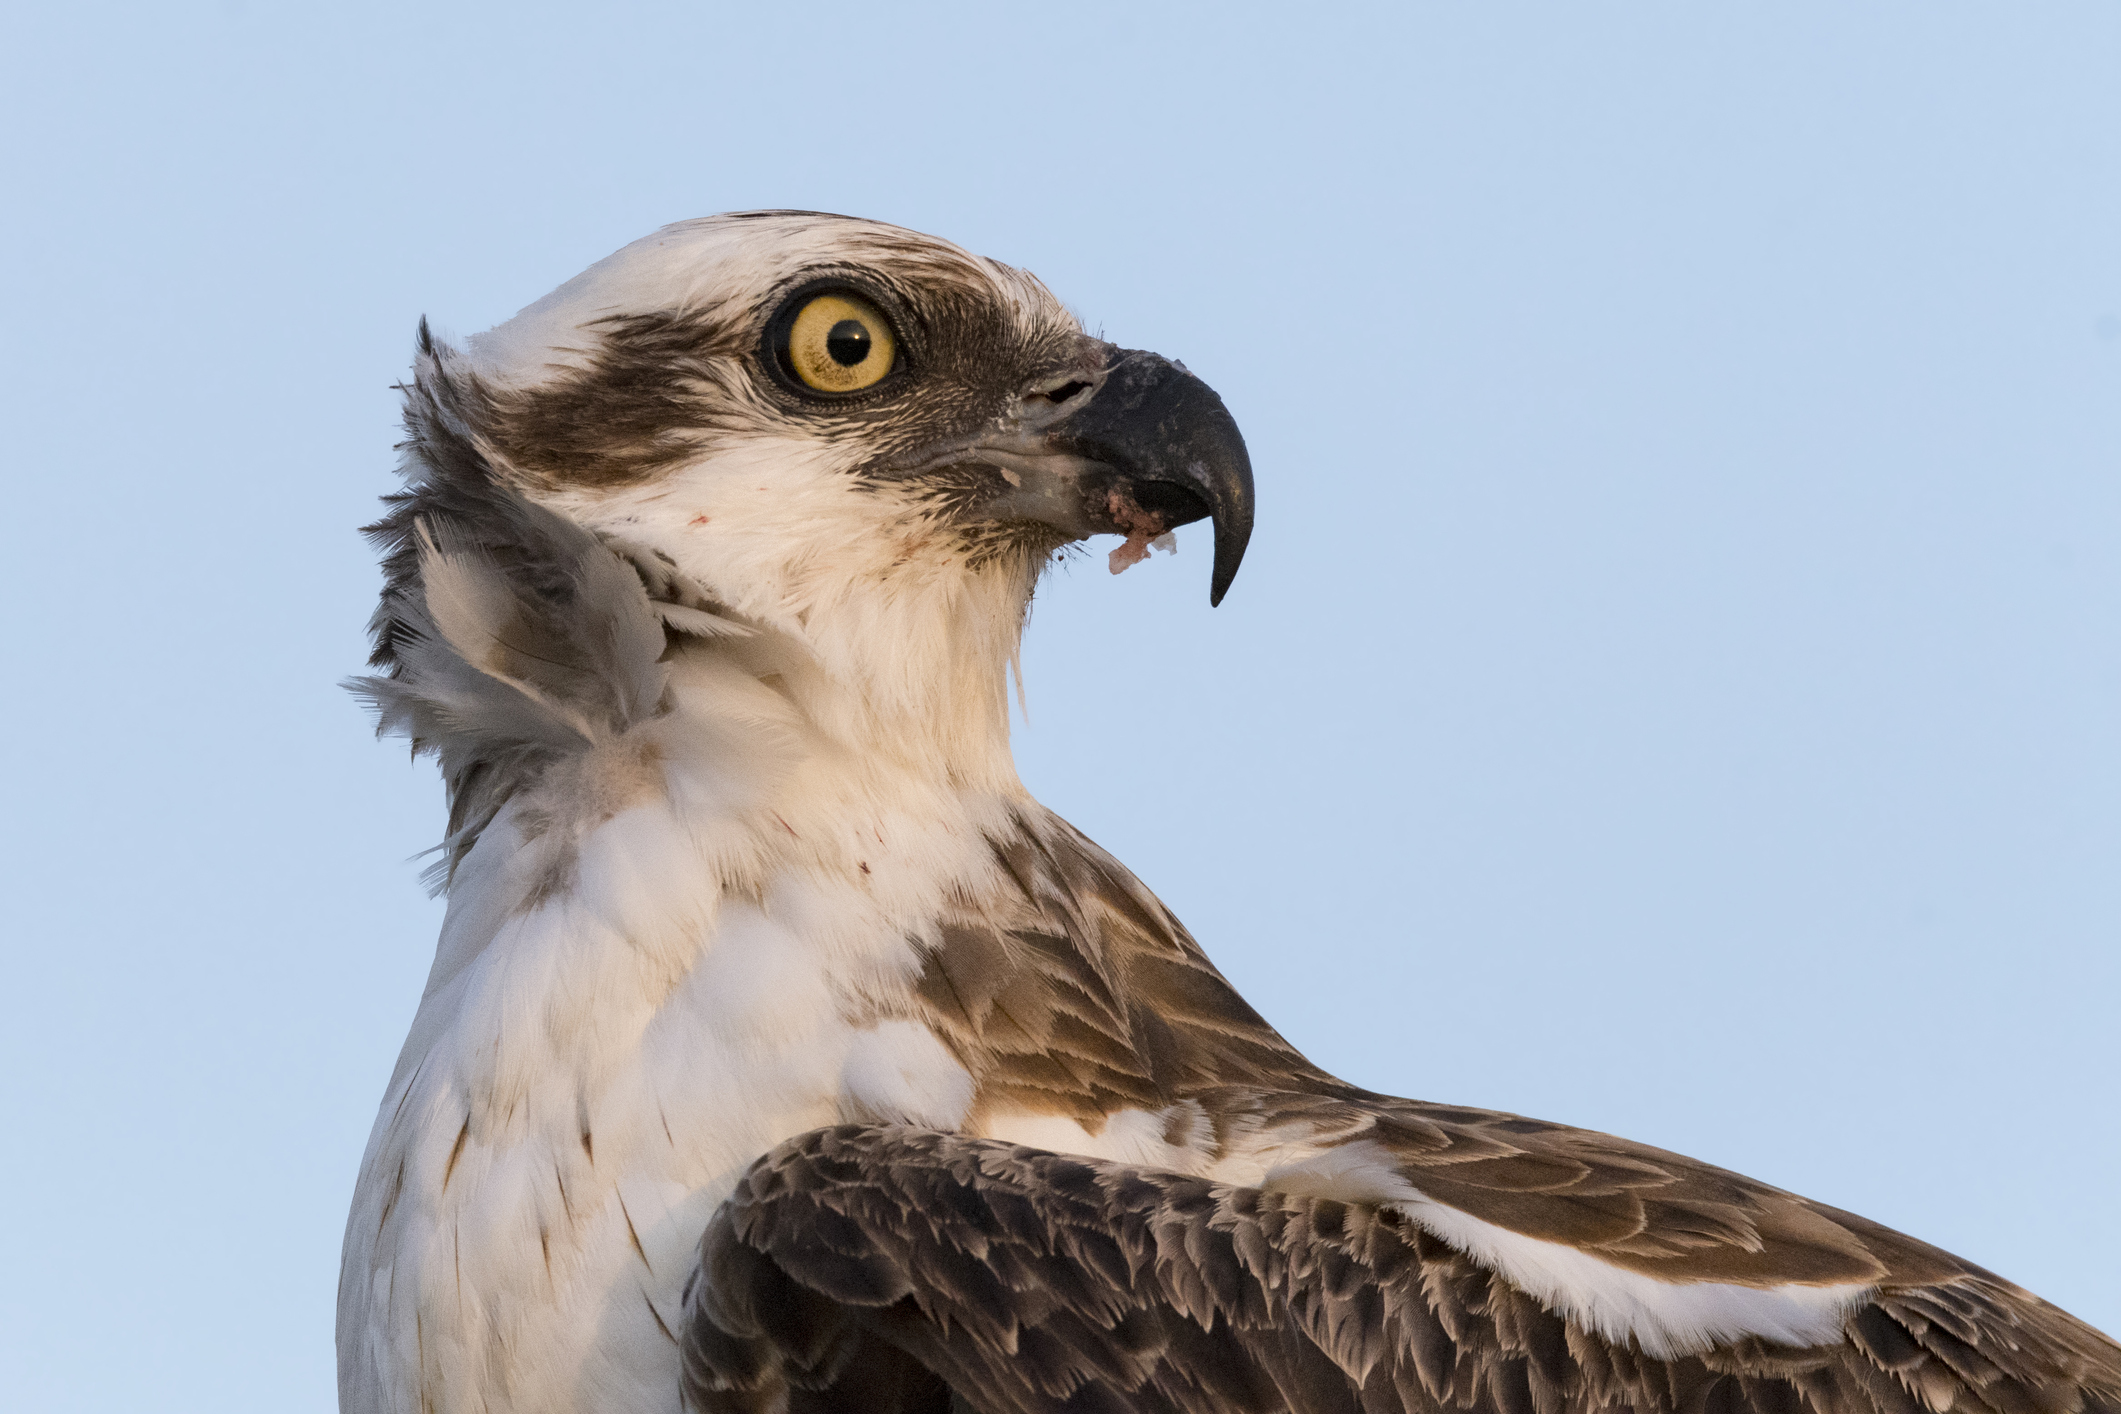 JCP&L Teams With Scouts to Relocate Osprey Nest | Transmission ...